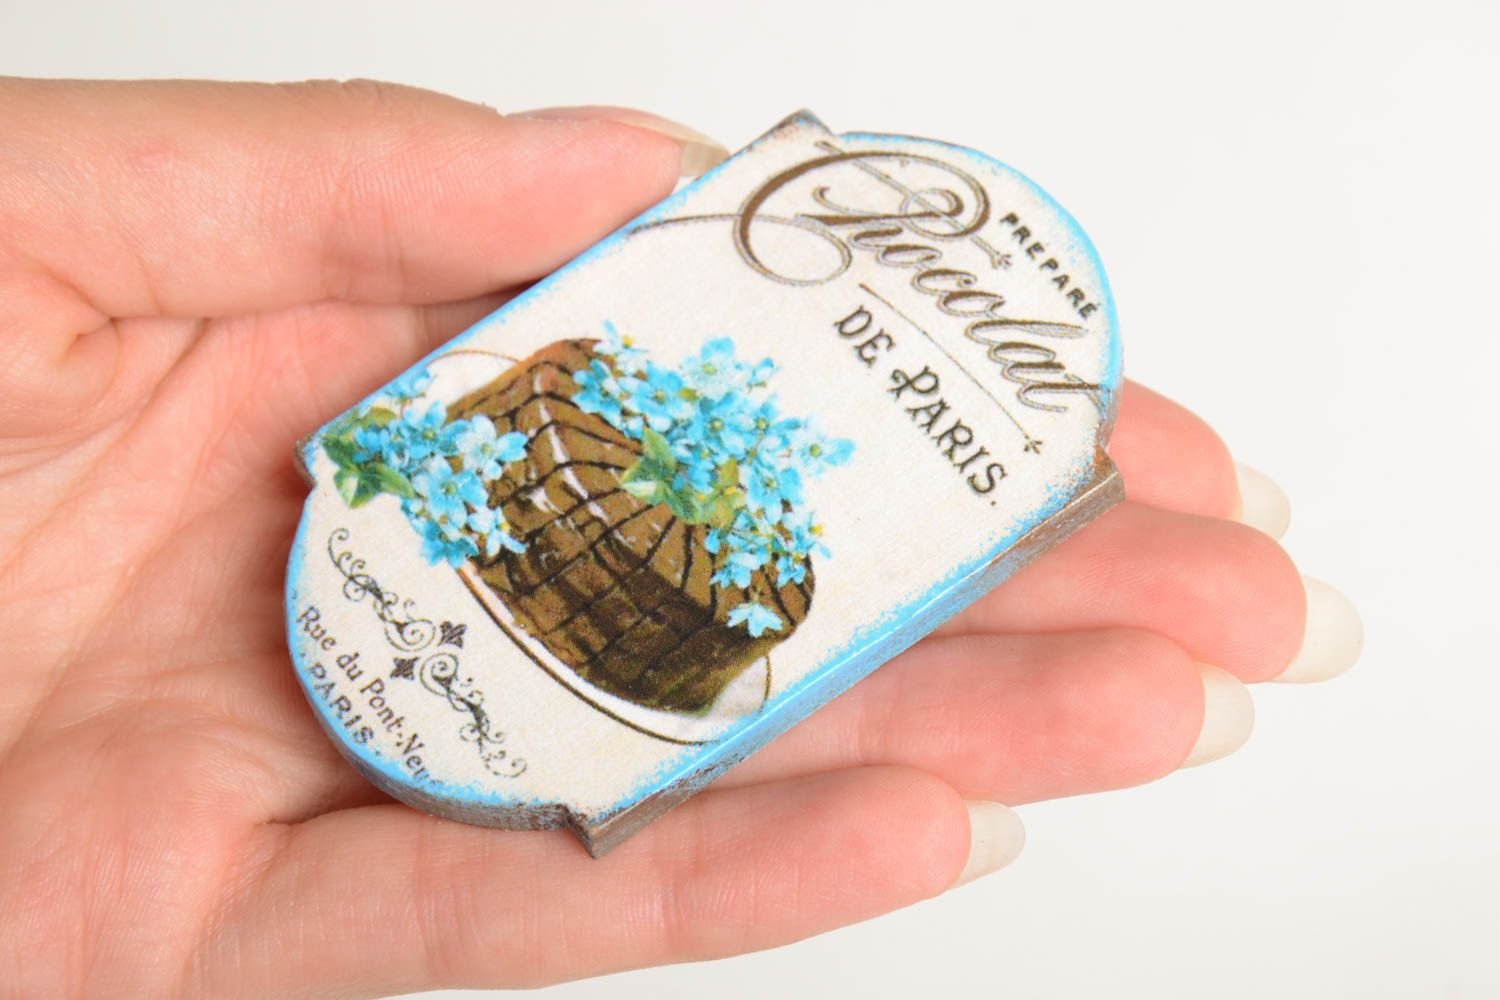 Unusual handmade fridge magnet cool fridge magnets small gifts for decor only photo 4